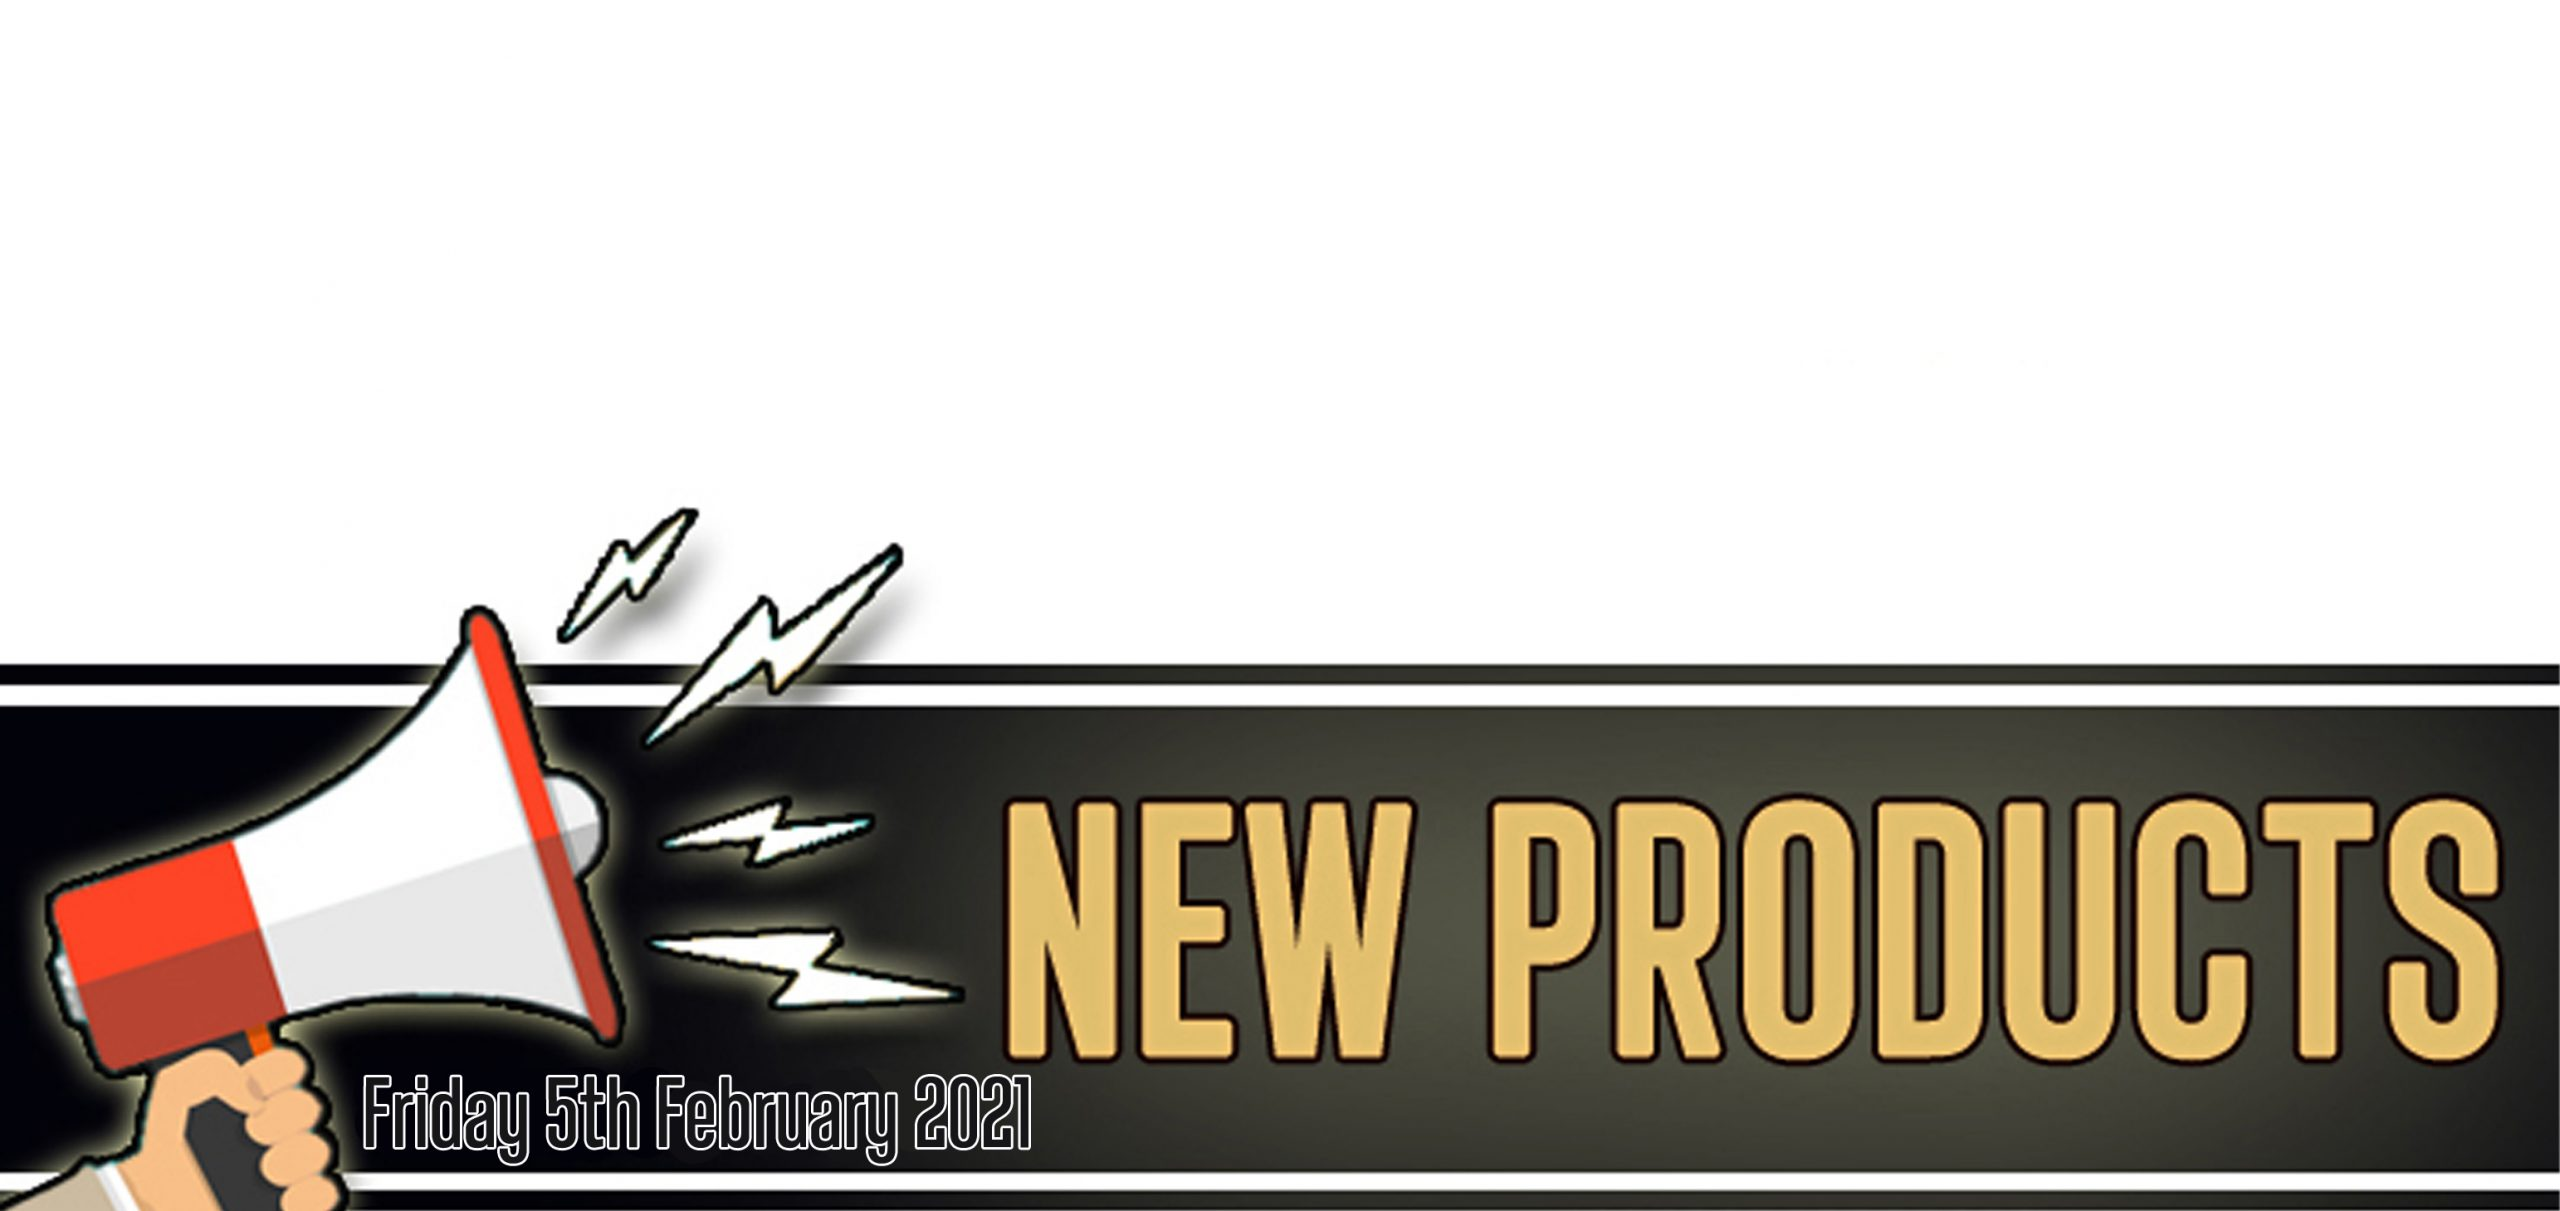 New Products for February 5th 2021